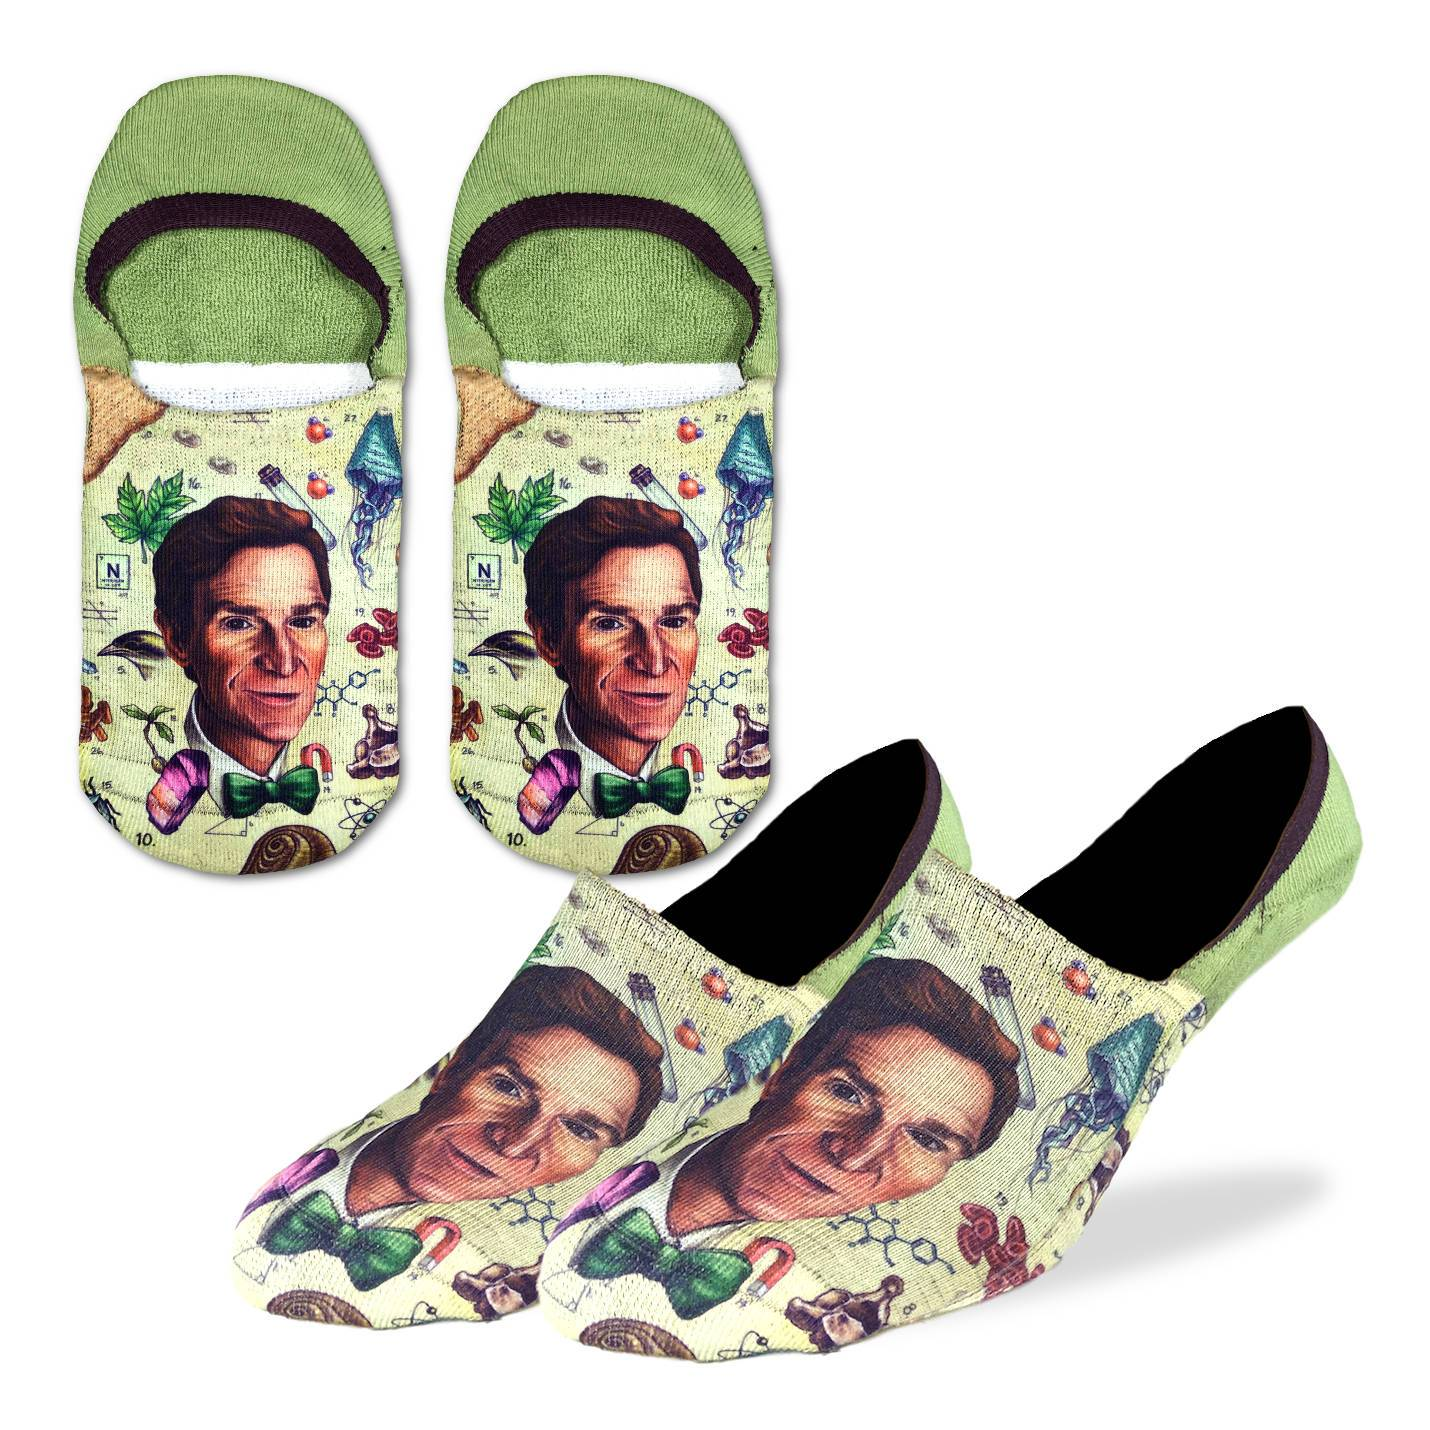 Men's Bill Nye No Show Socks - Good Luck Sock